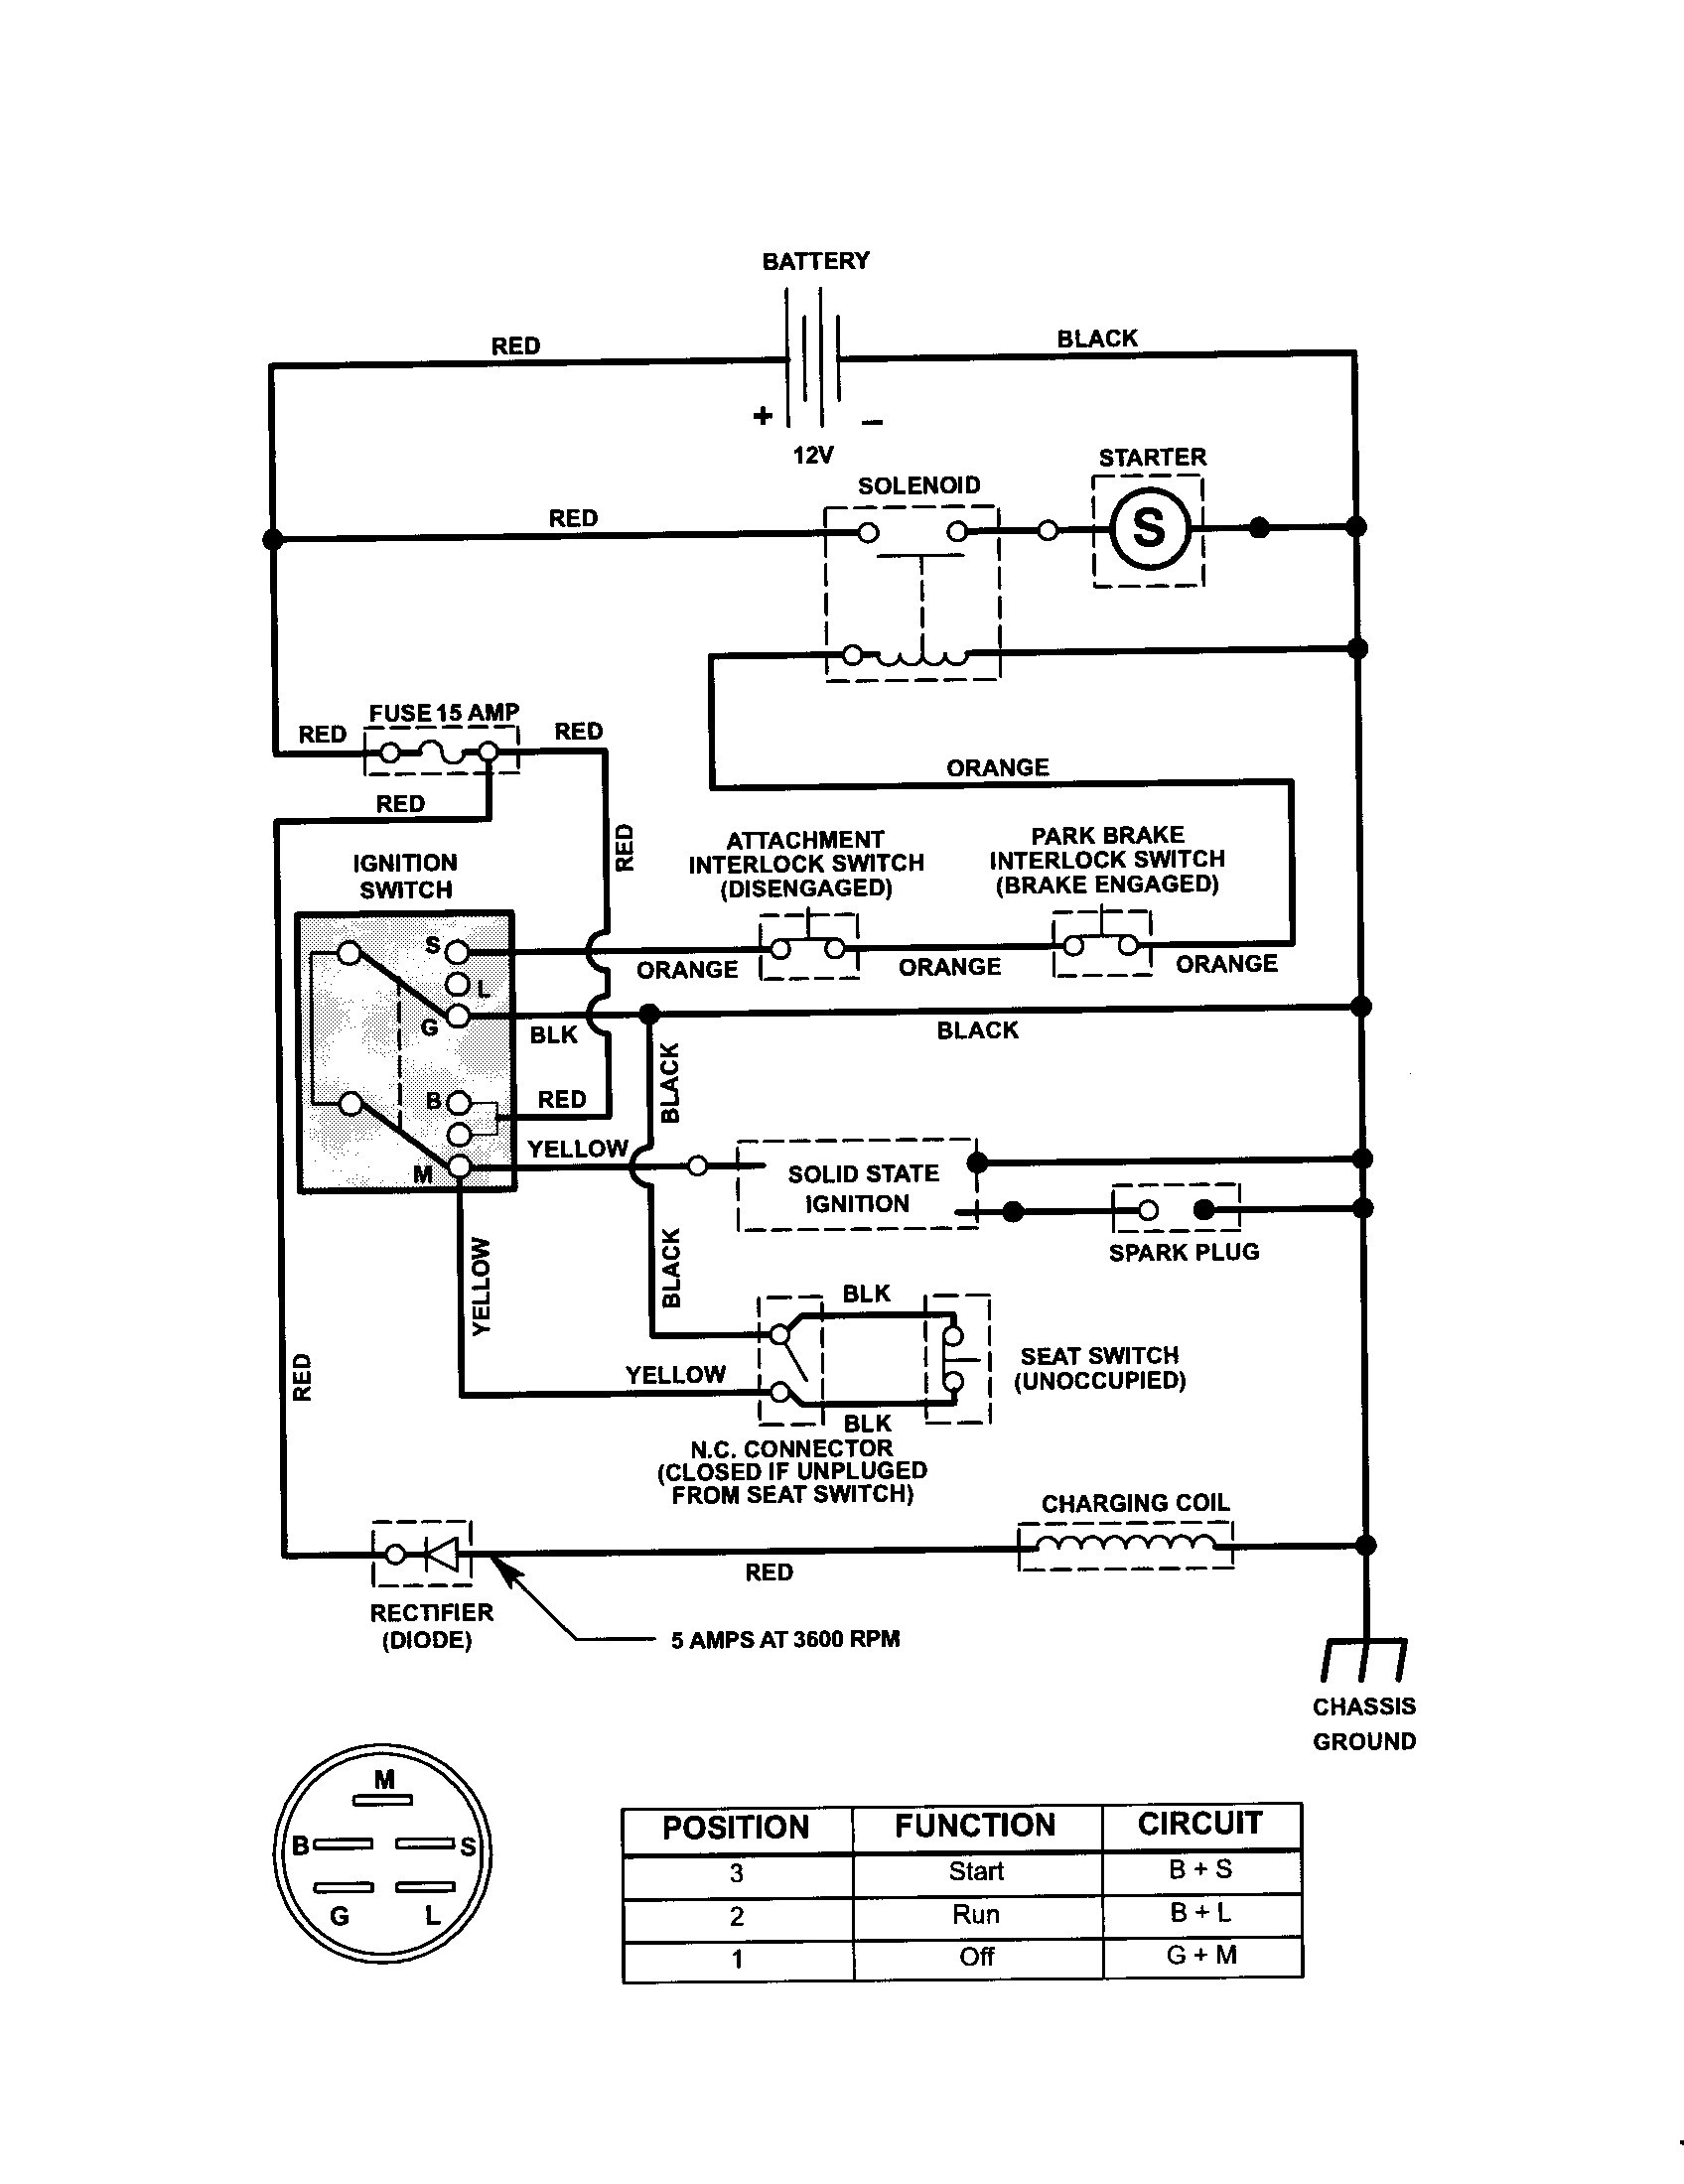 Jd 318 Lawn Tractor Wire Diagram Vs 0426] Sabre Wiring Diagram Of Jd 318 Lawn Tractor Wire Diagram